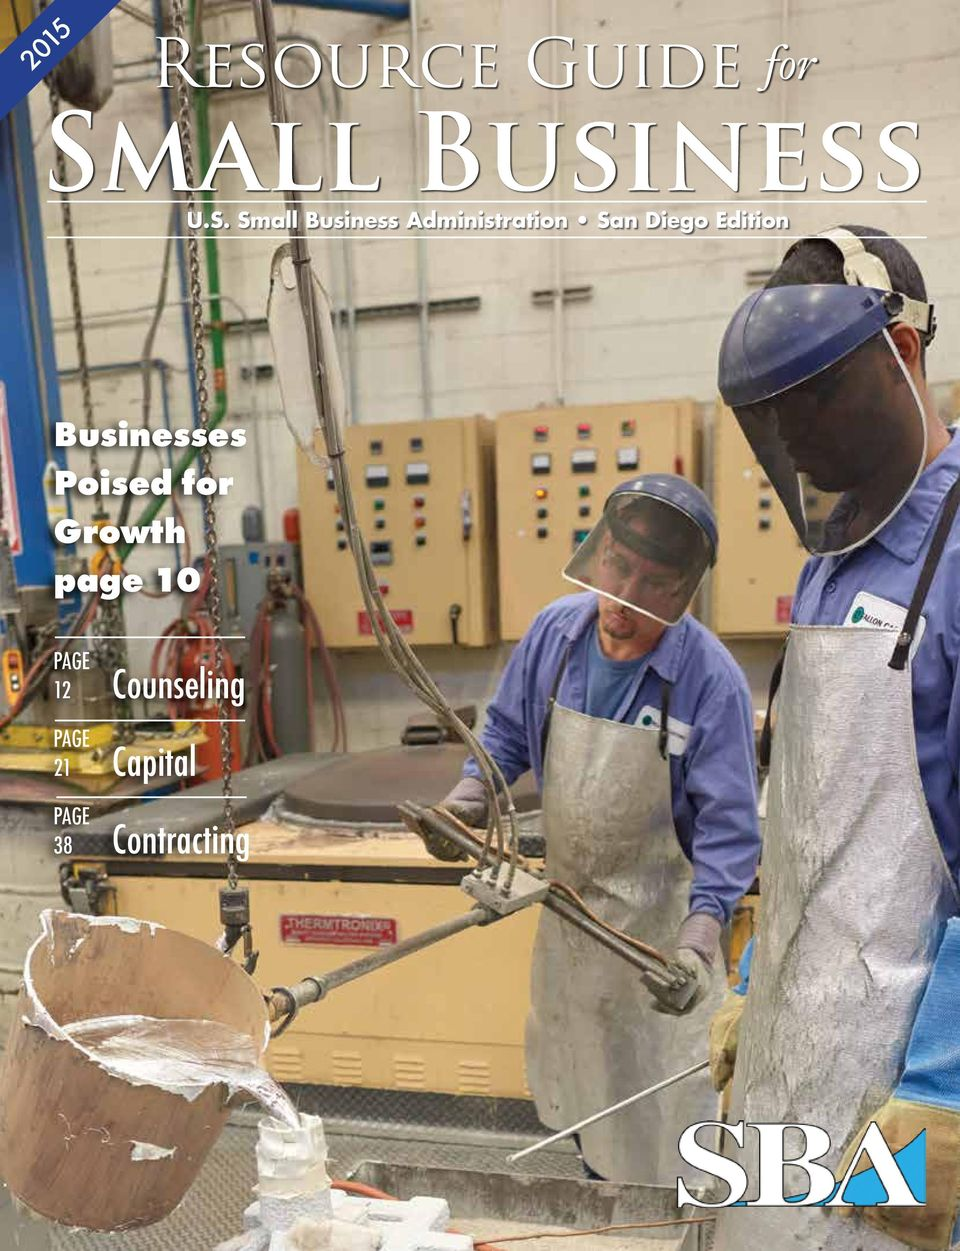 Small Business Administration San Diego